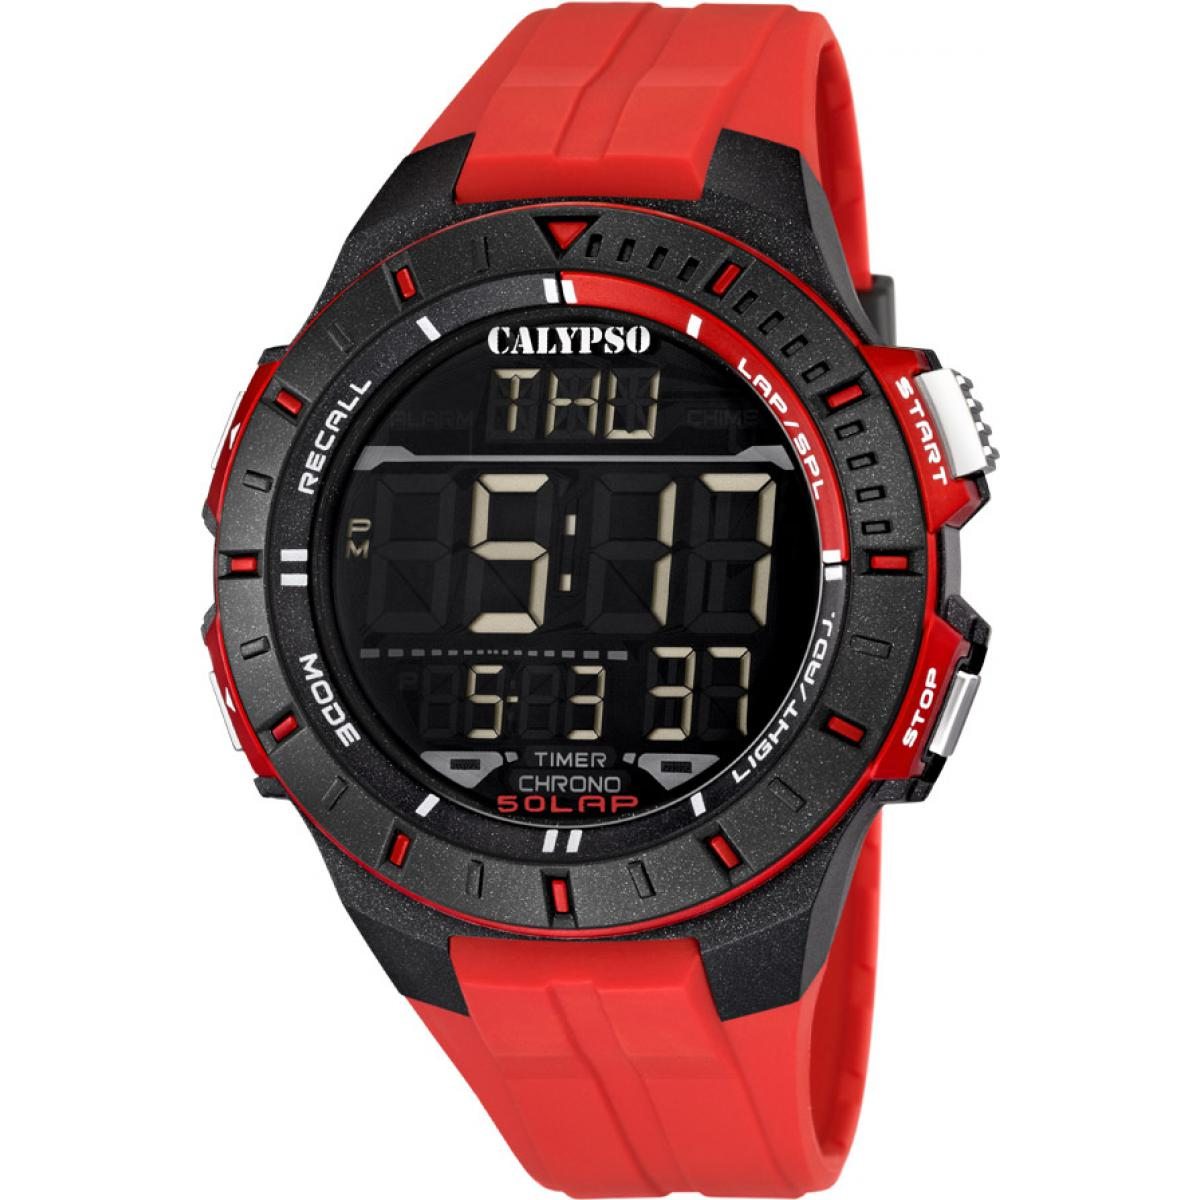 Montre Calypso Silicone Digital For Man K5607-5 - Homme